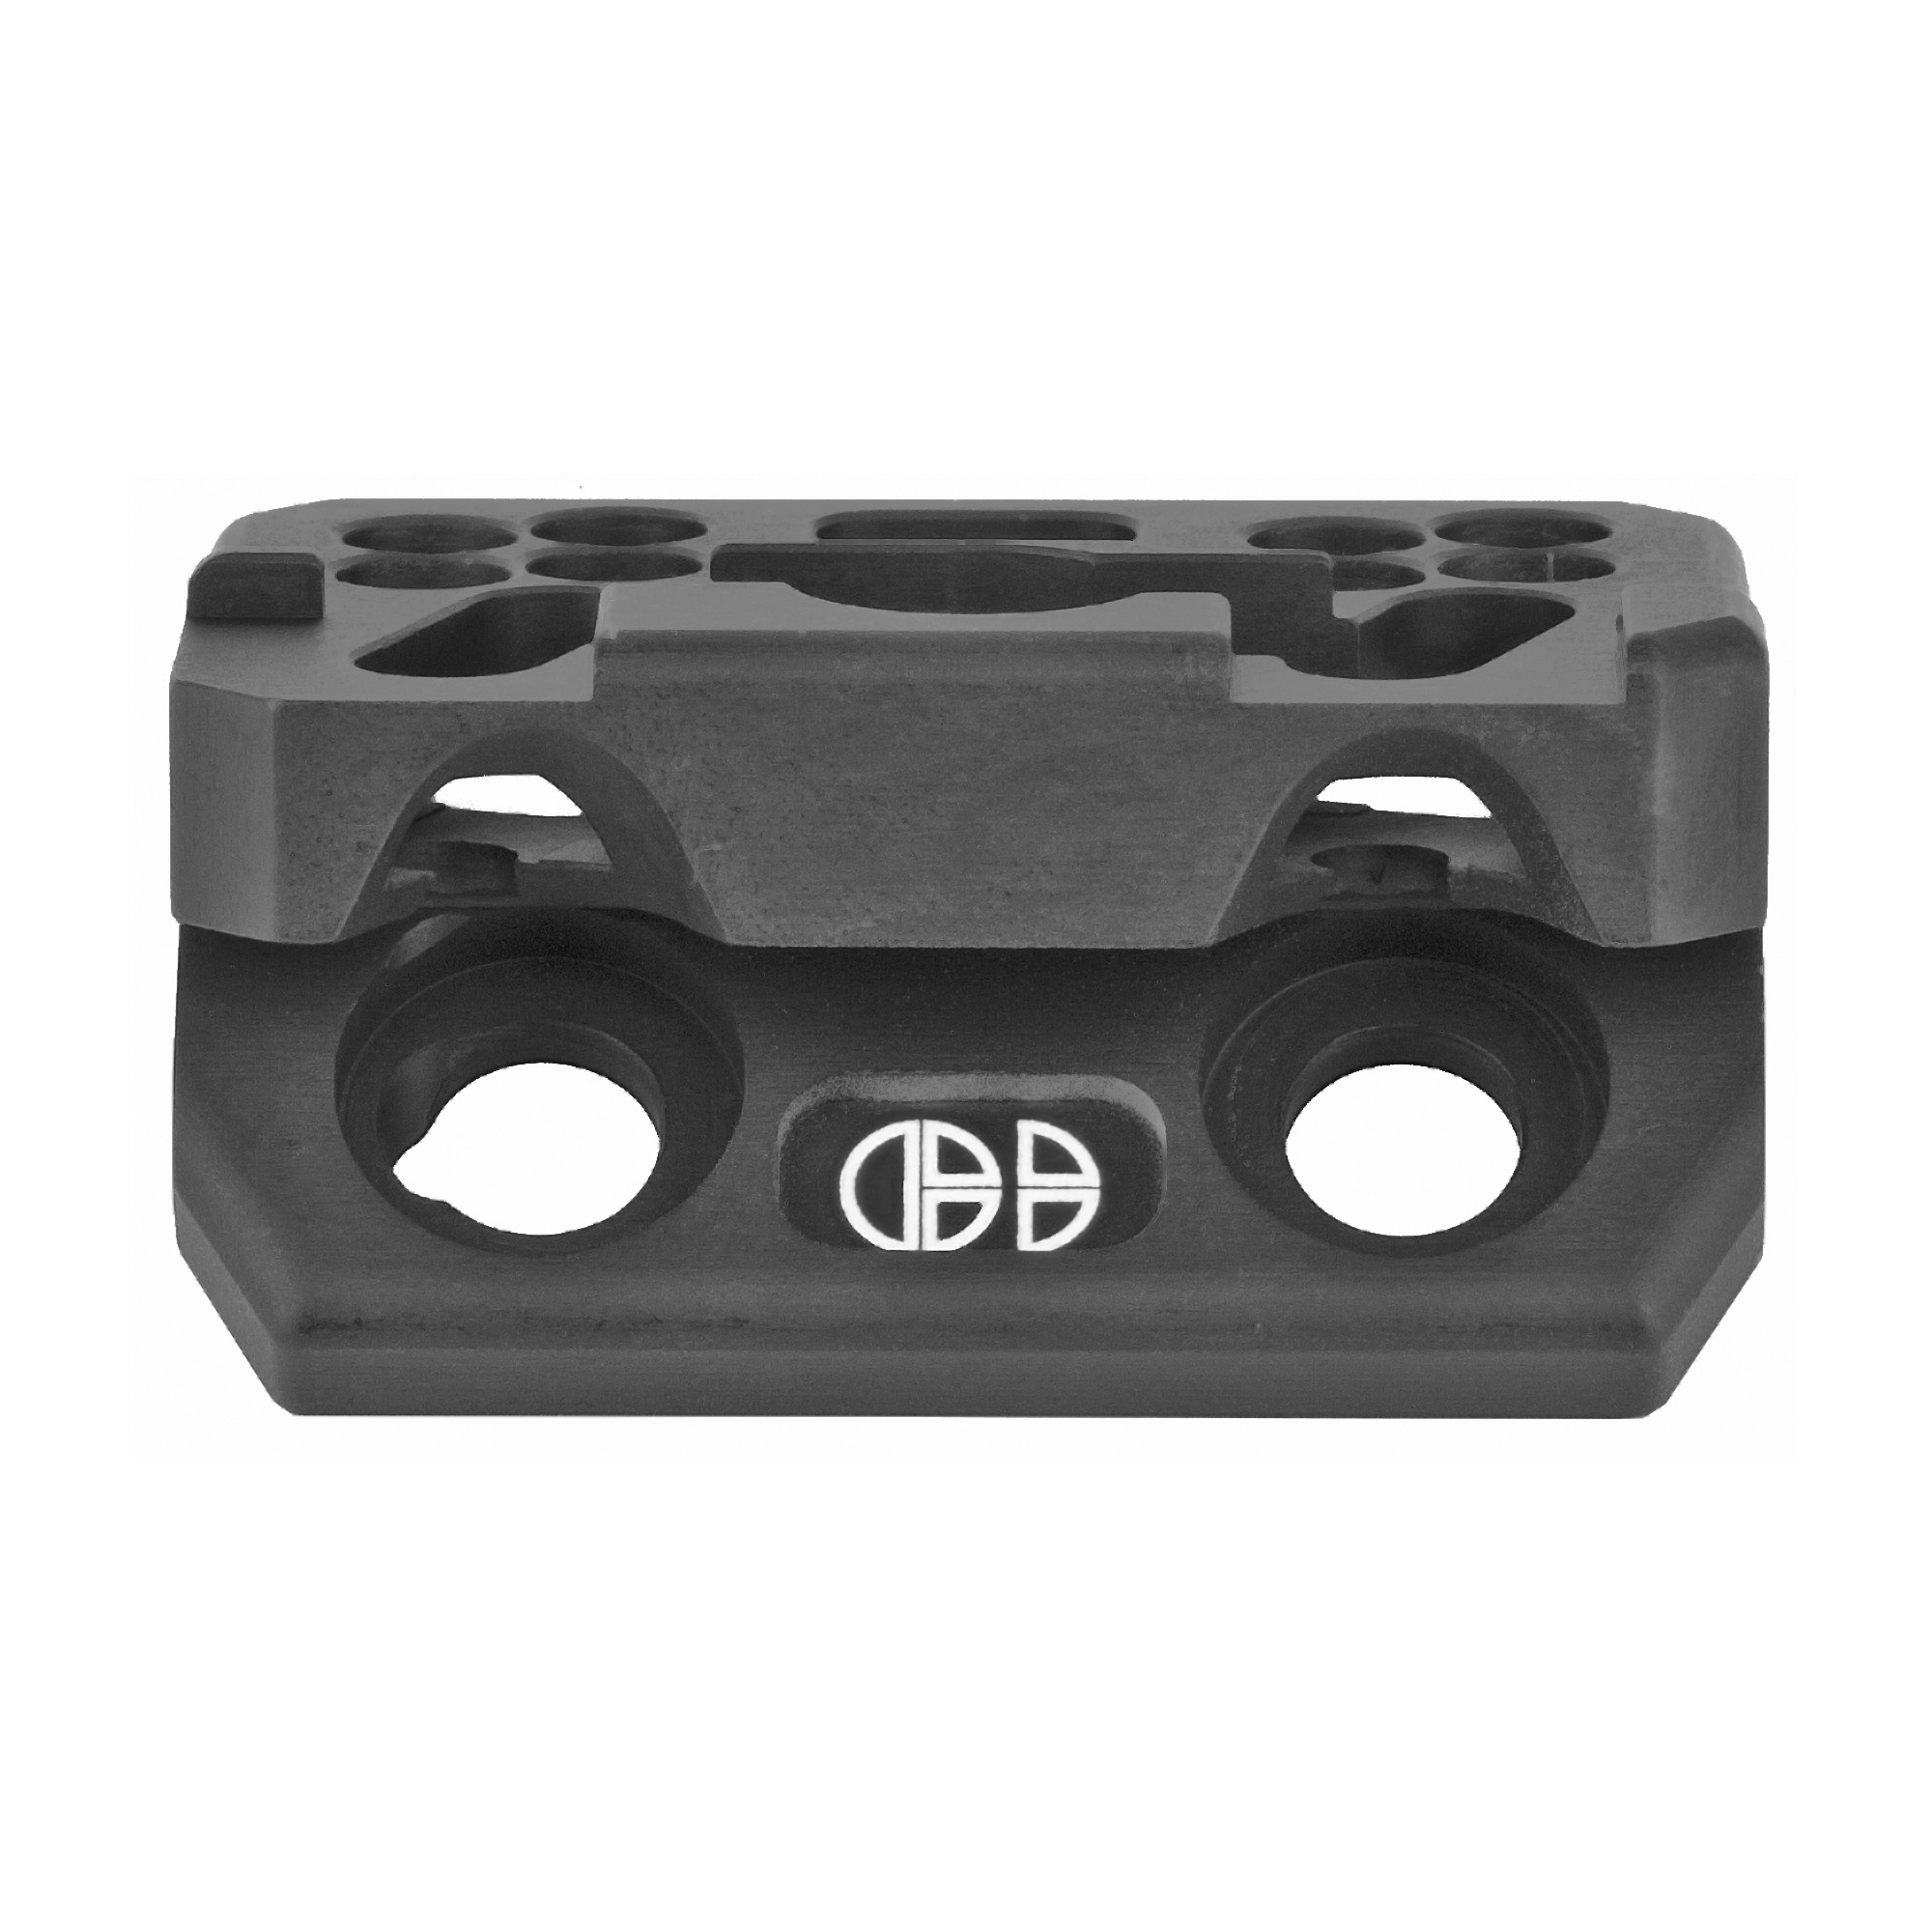 Cld Def Torrent M-lok Offset Mount